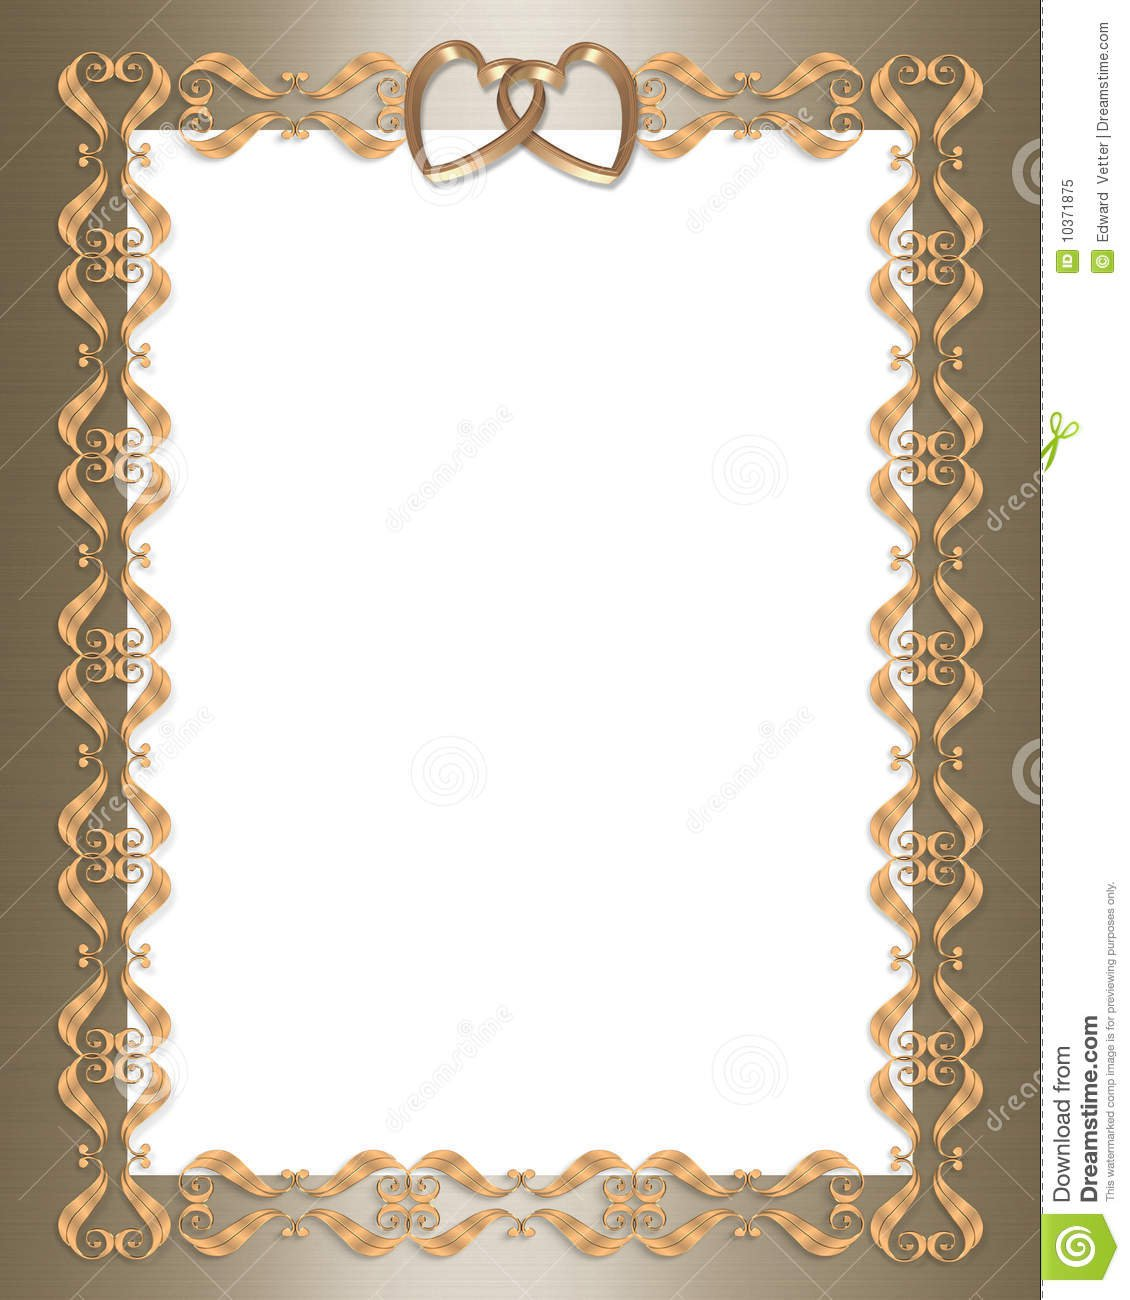 gold wedding borders for invitations